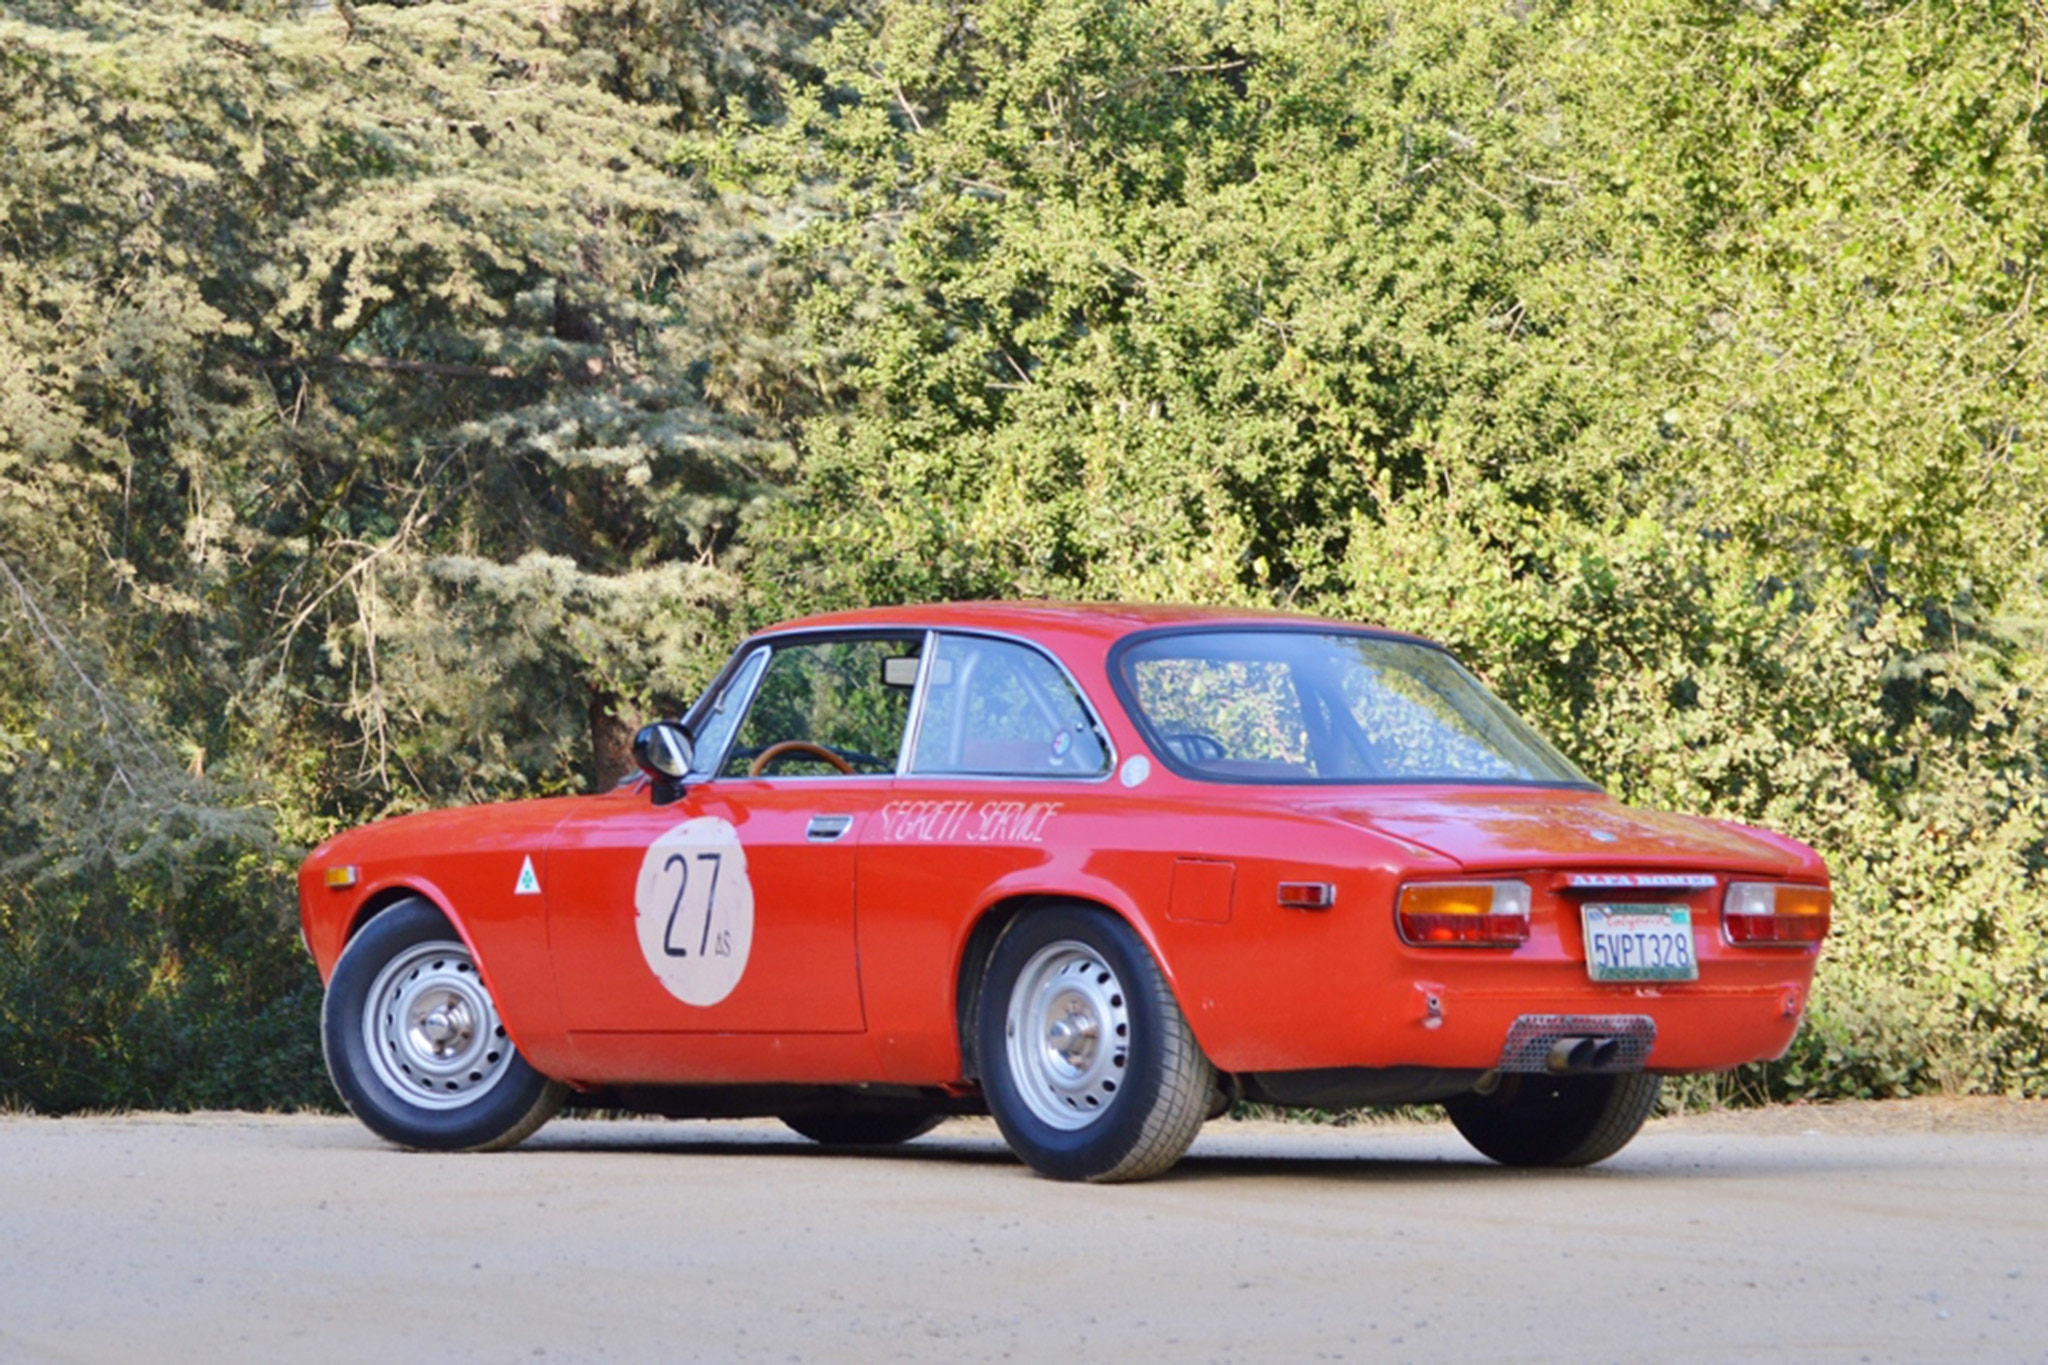 Just Listed: Well-Presented 1974 Alfa Romeo GTV